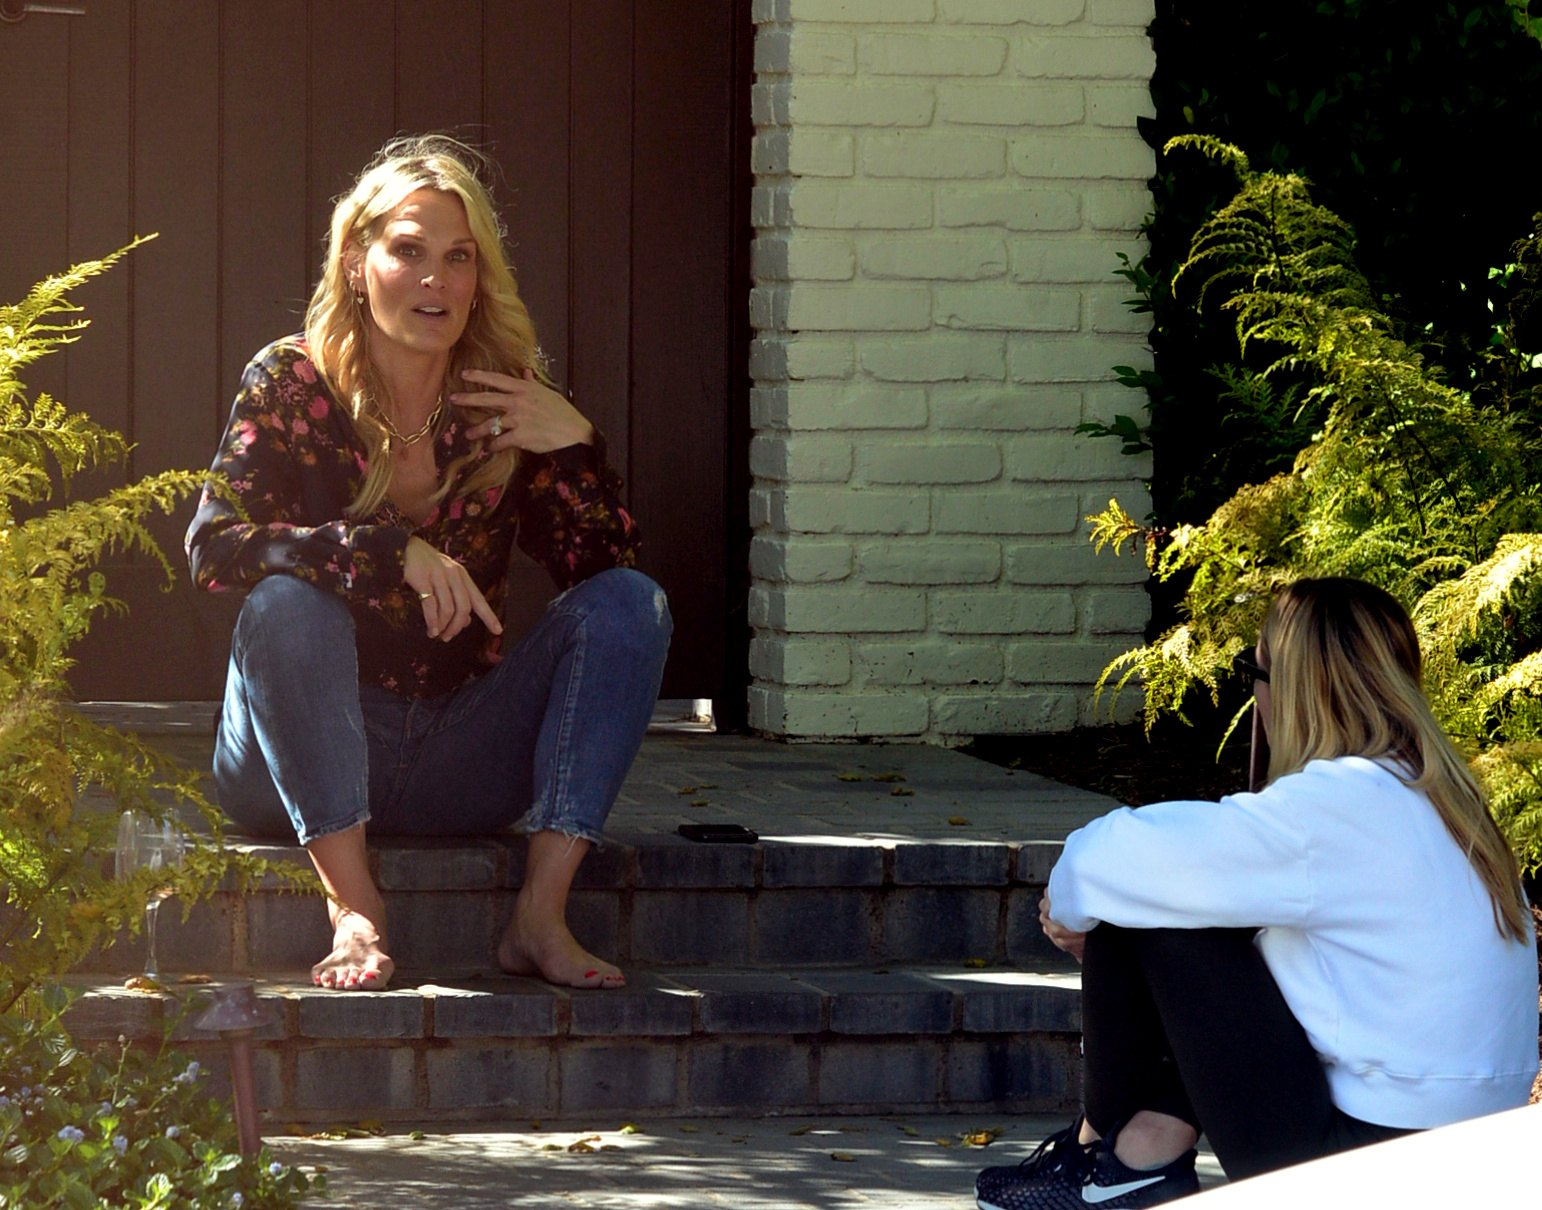 Molly Sims Outside her House in Pacific Palisades